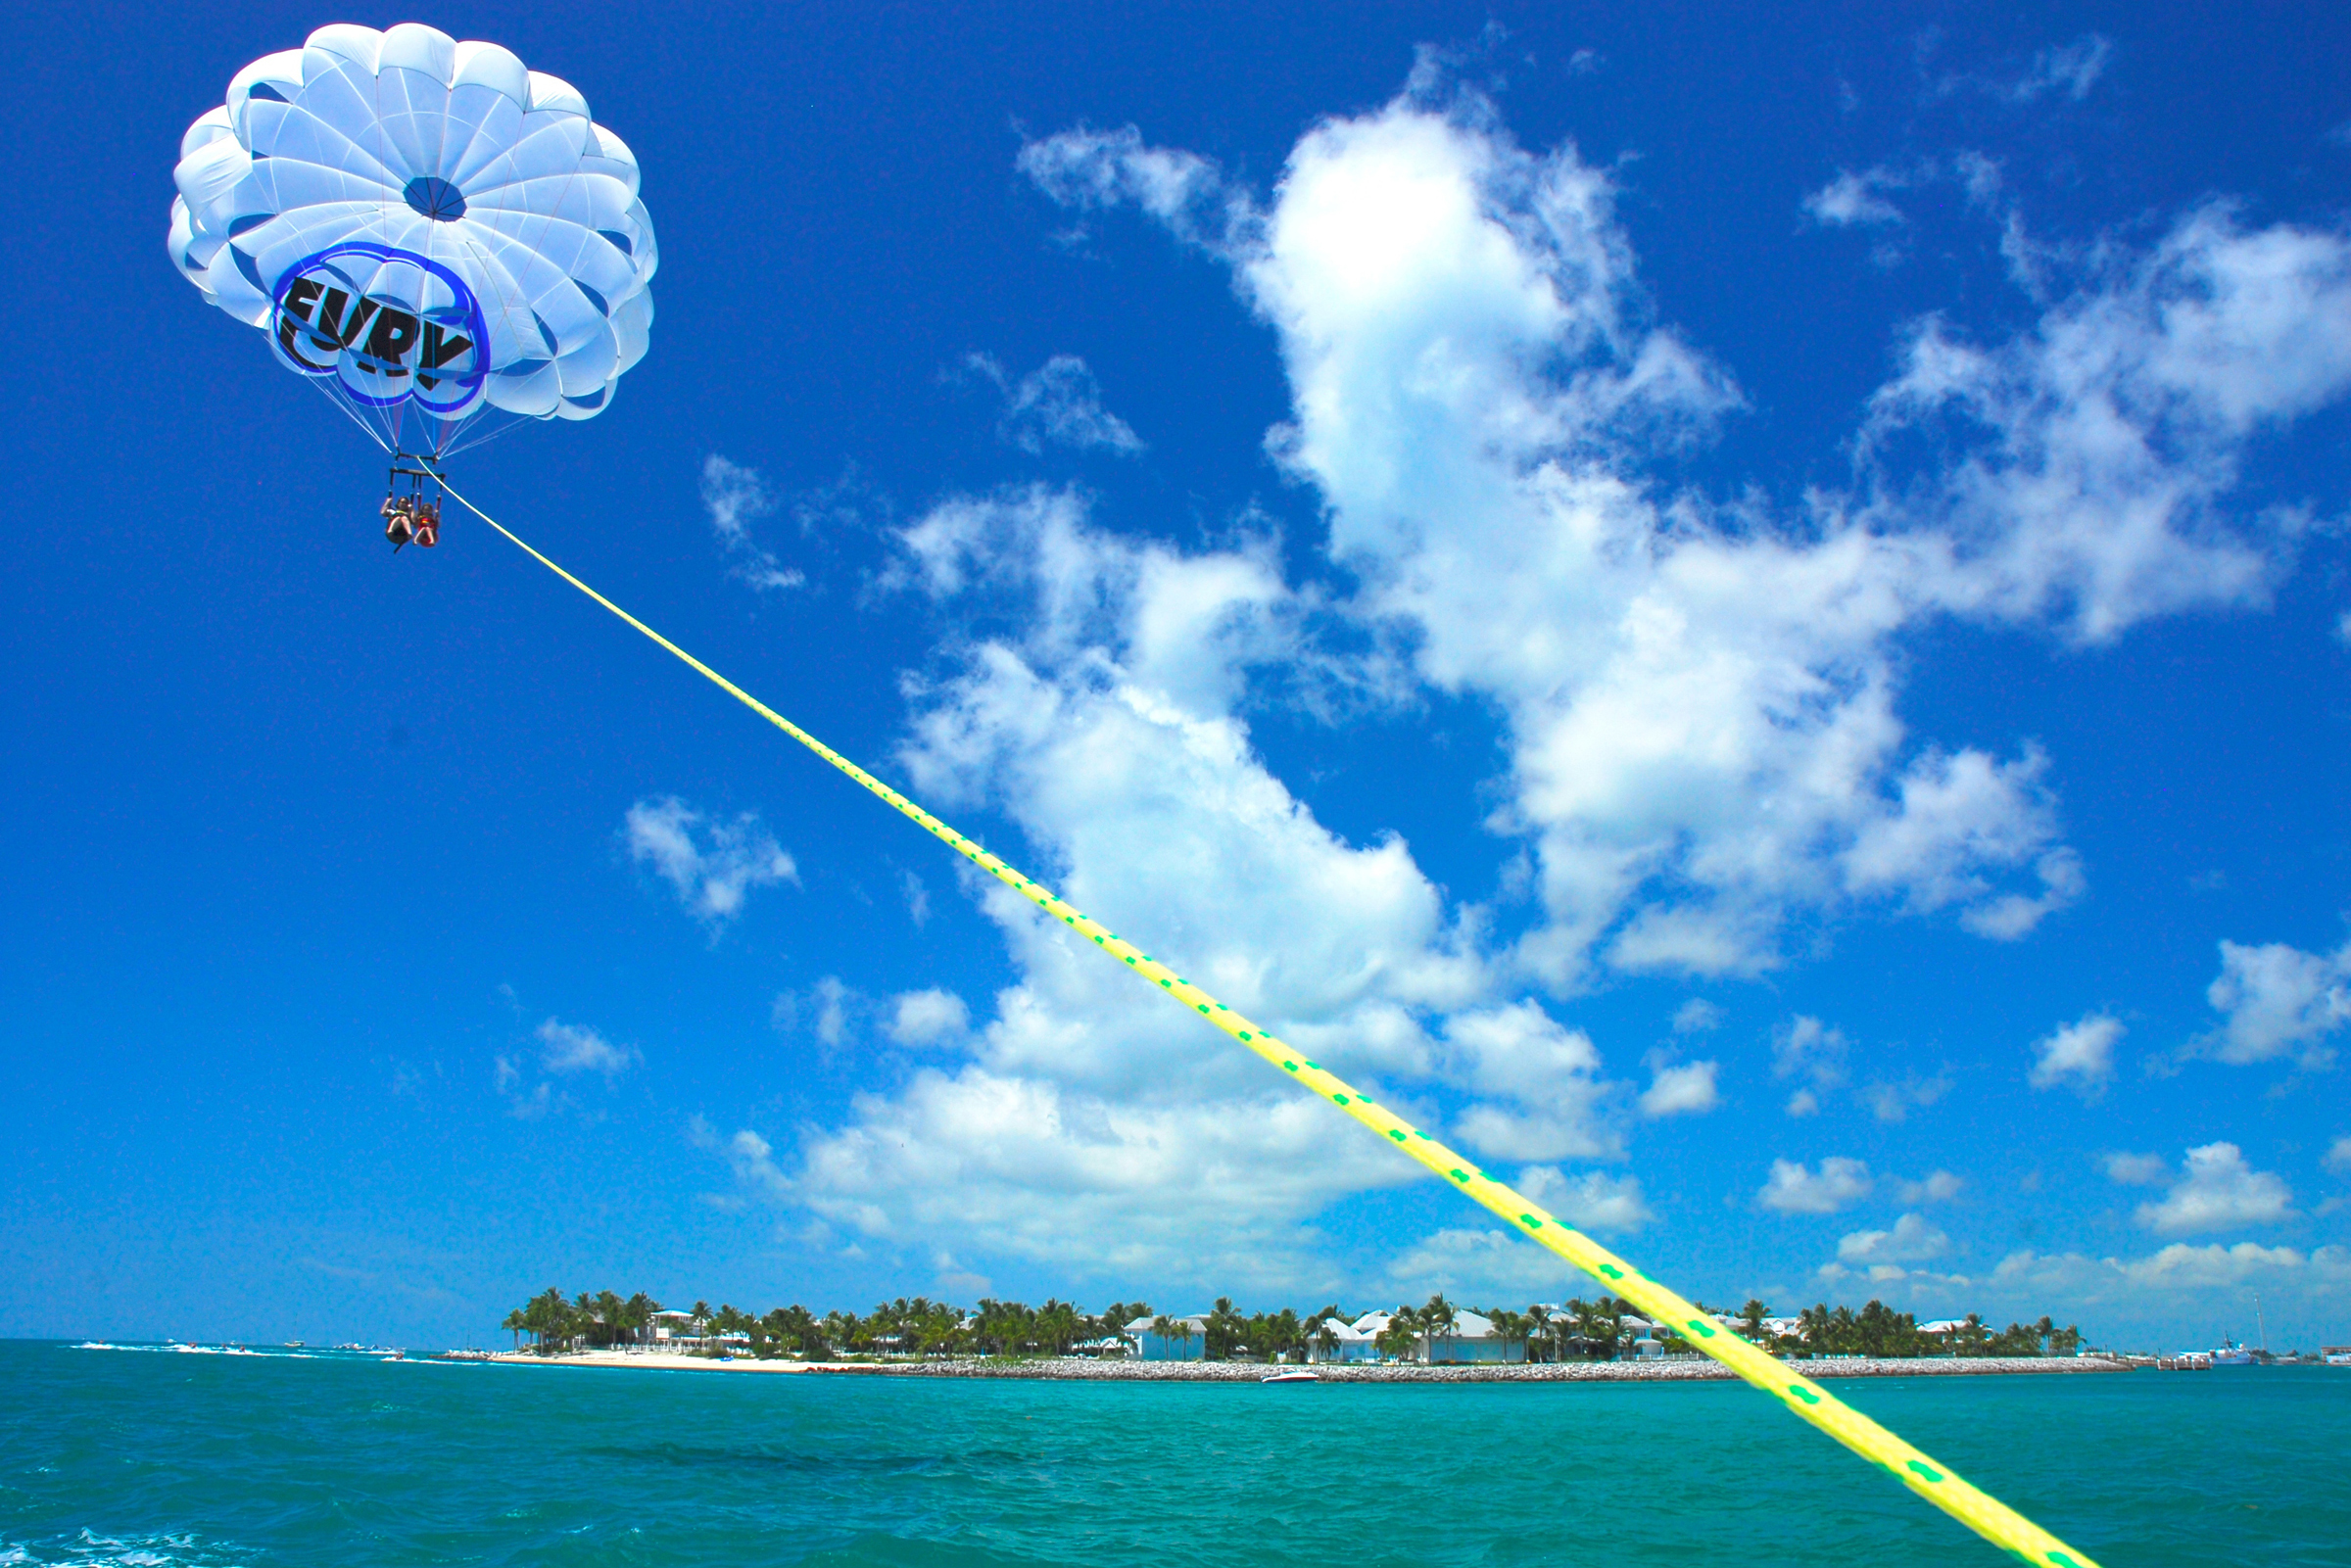 Fury Key West Parasailing Trip